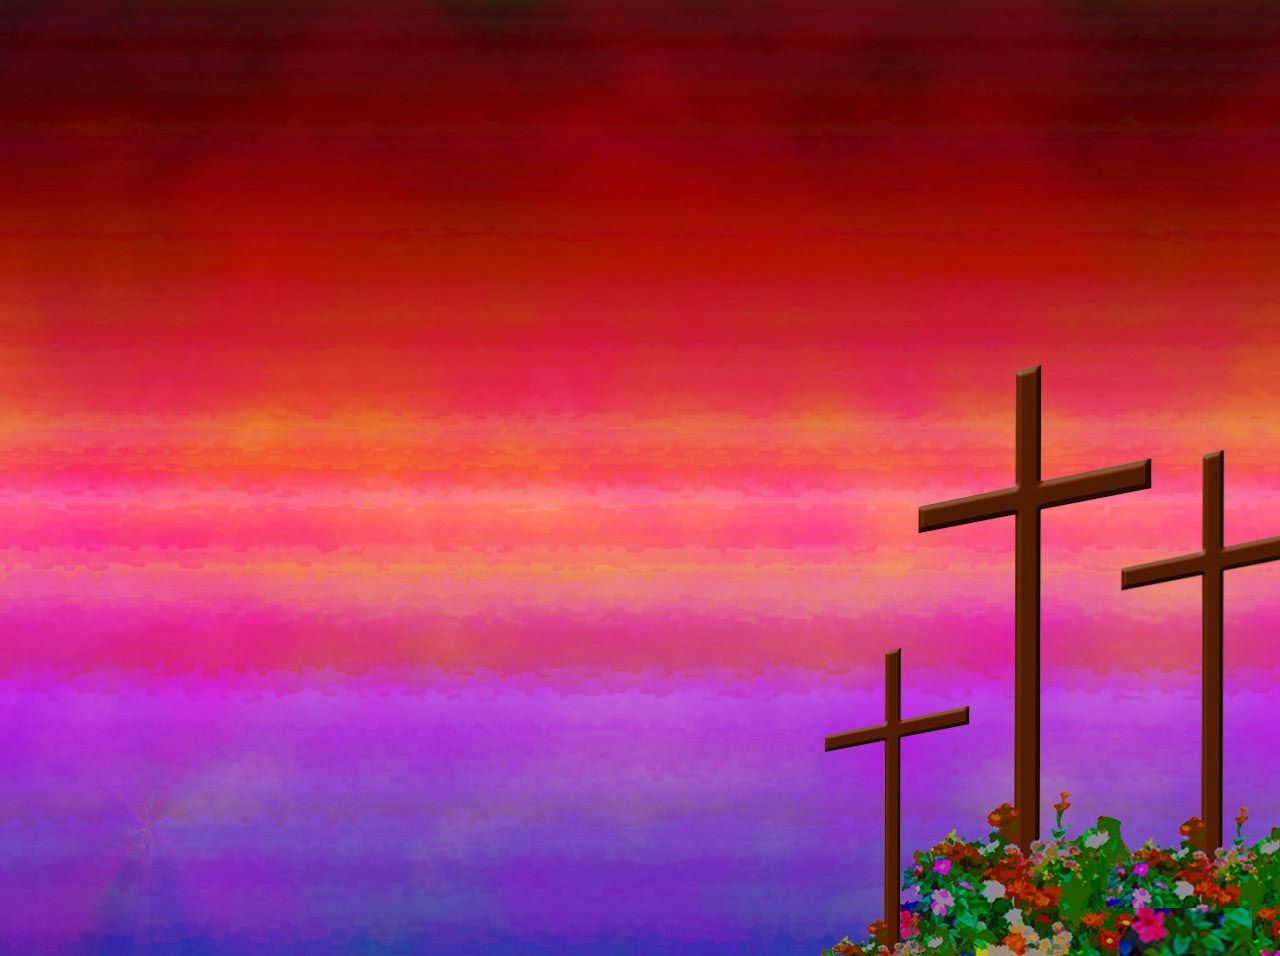 Christian rose garden powerpoint background available in 1280x956 christian rose garden powerpoint background available in 1280x956 this powerpoint template is free to toneelgroepblik Image collections